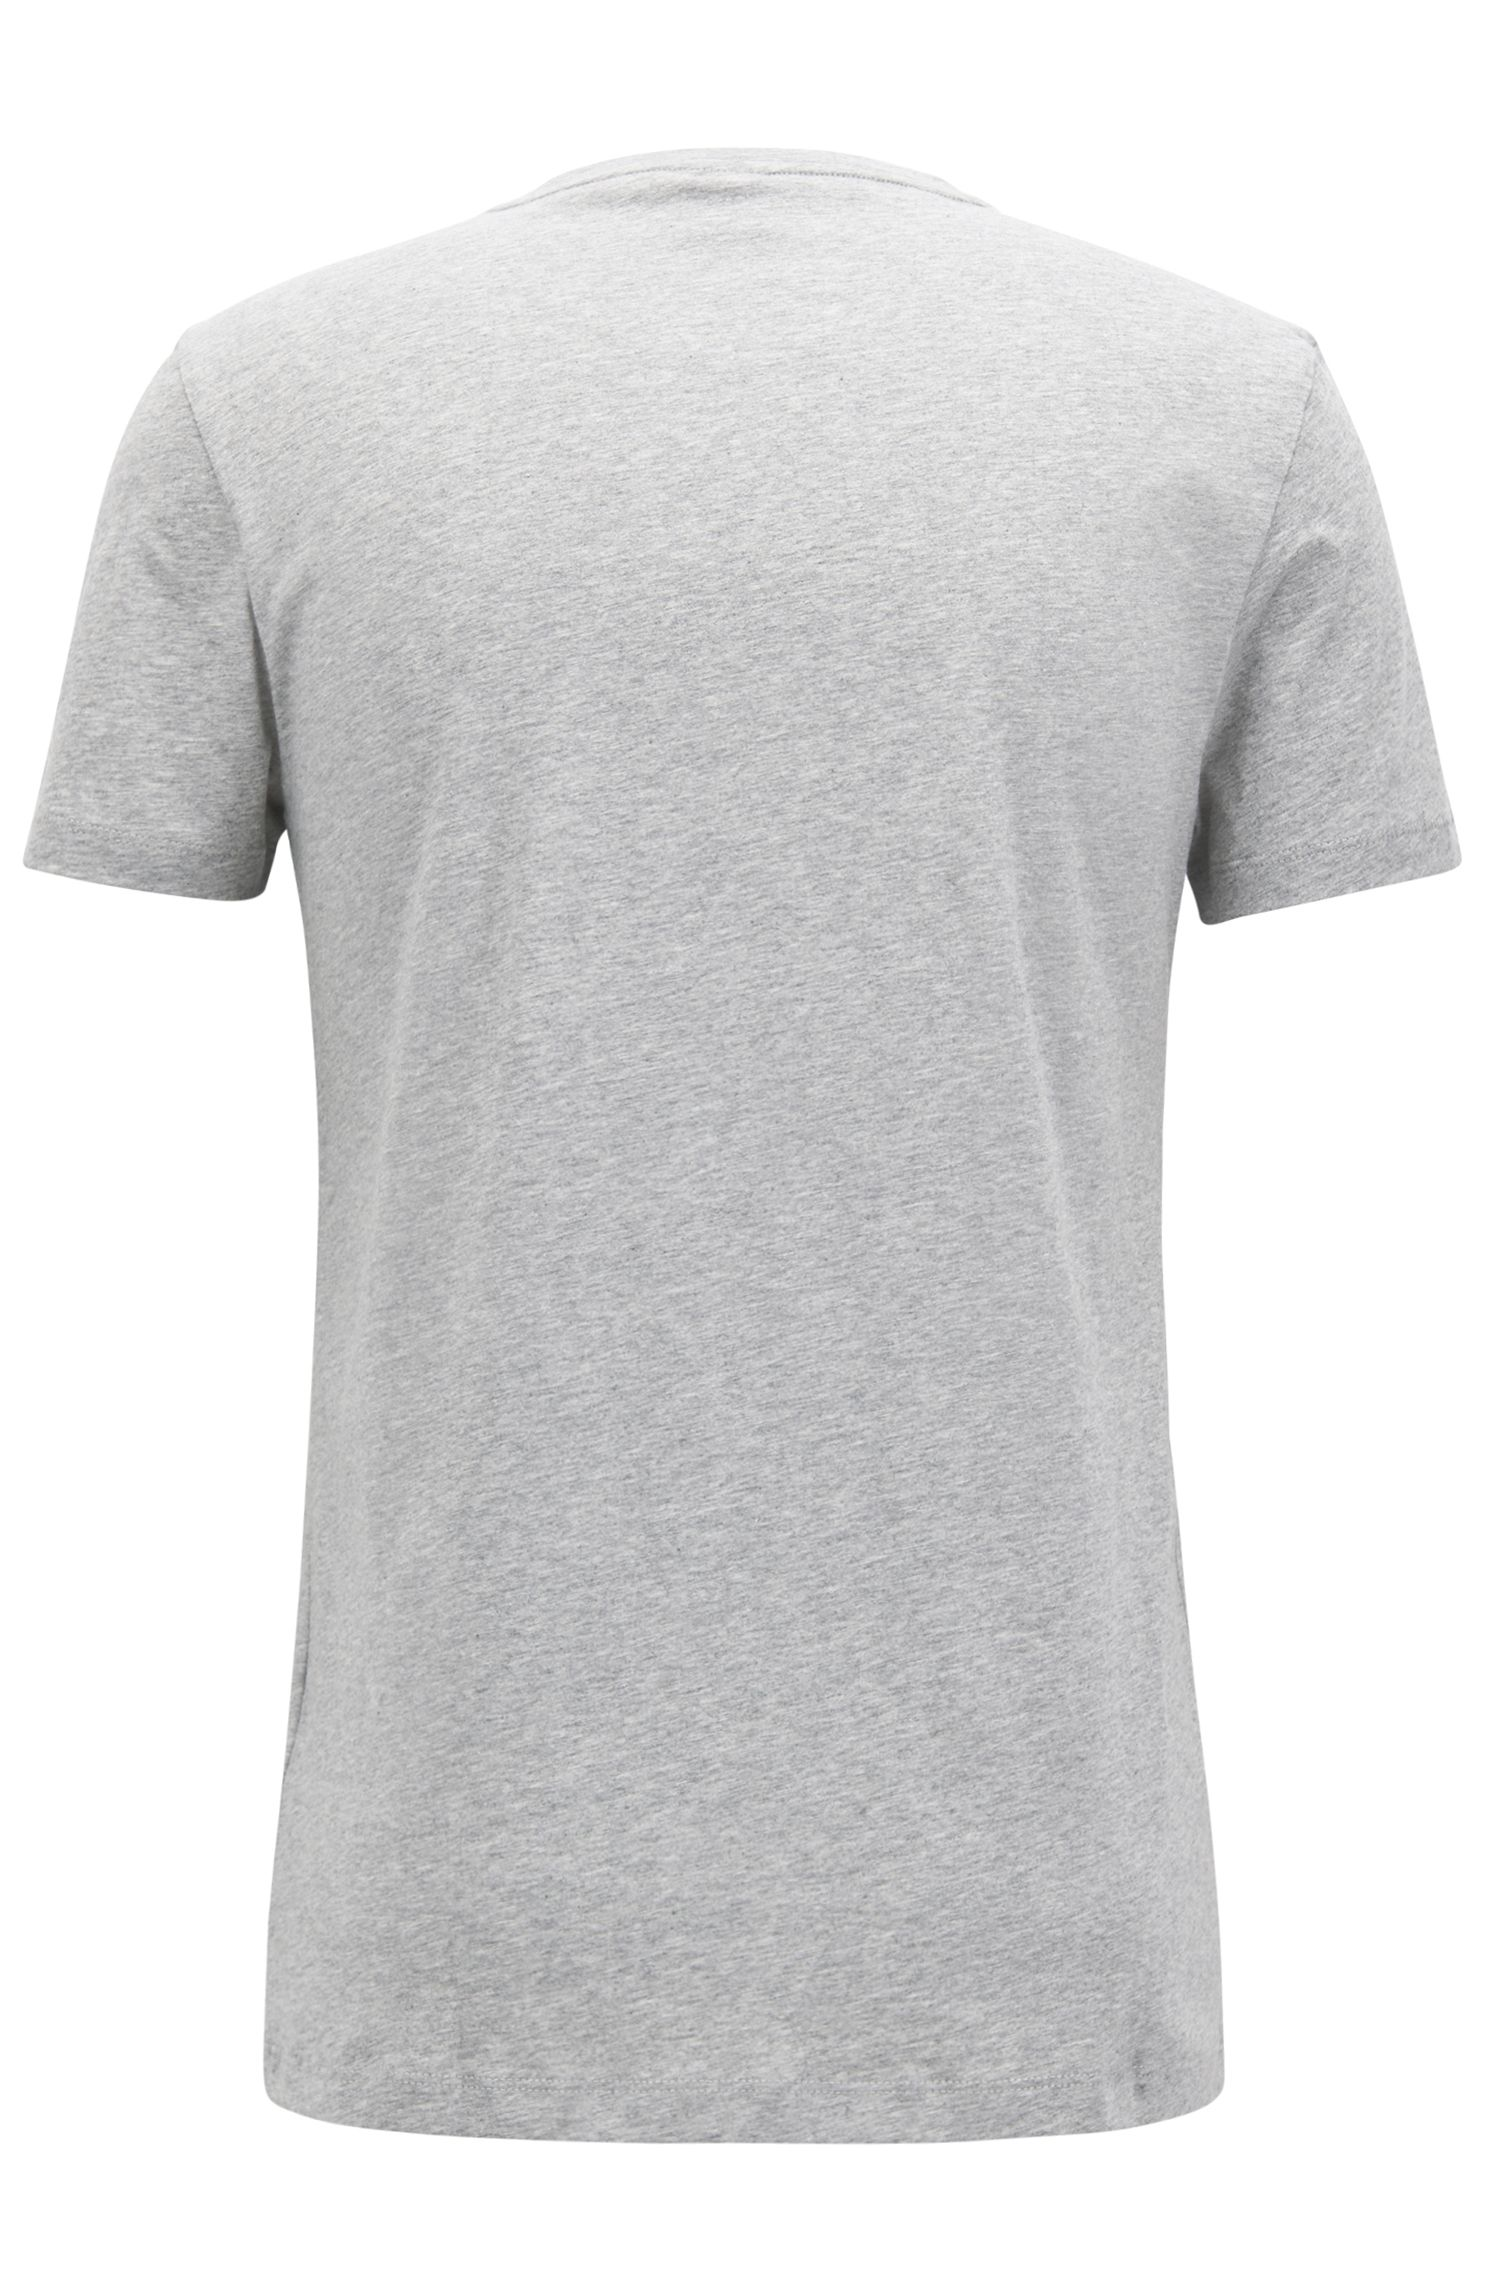 Jersey T-shirt with dégradé flocked logo, Grey